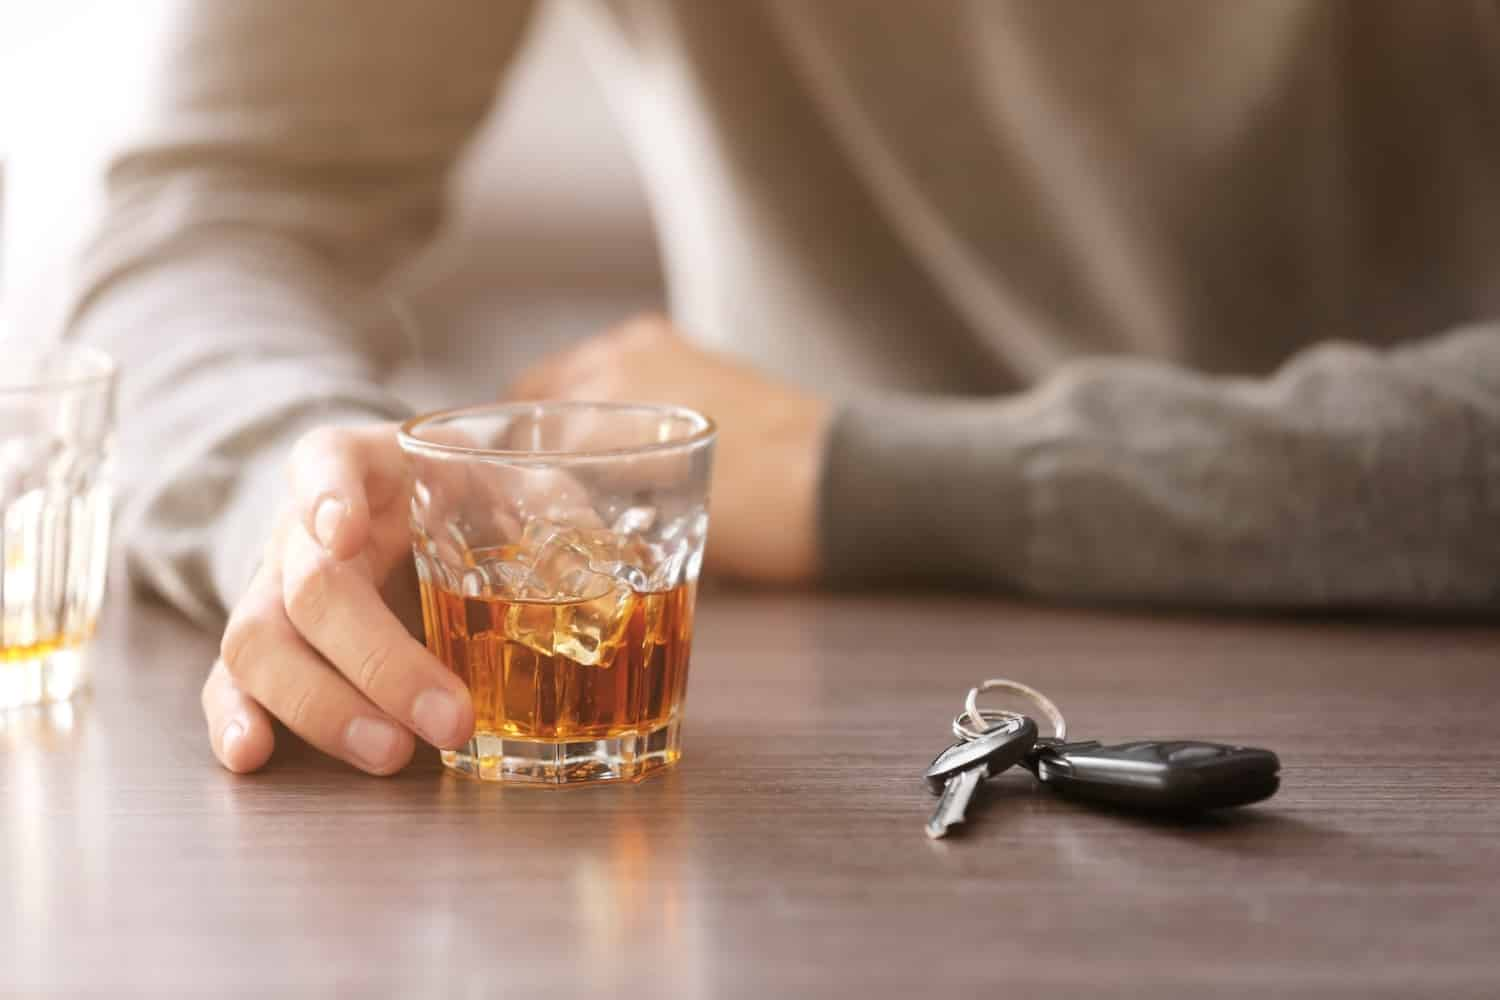 A person drinking with a pair of keys in front of them. If they drink and drive, they may face harsh Arizona DUI penalties